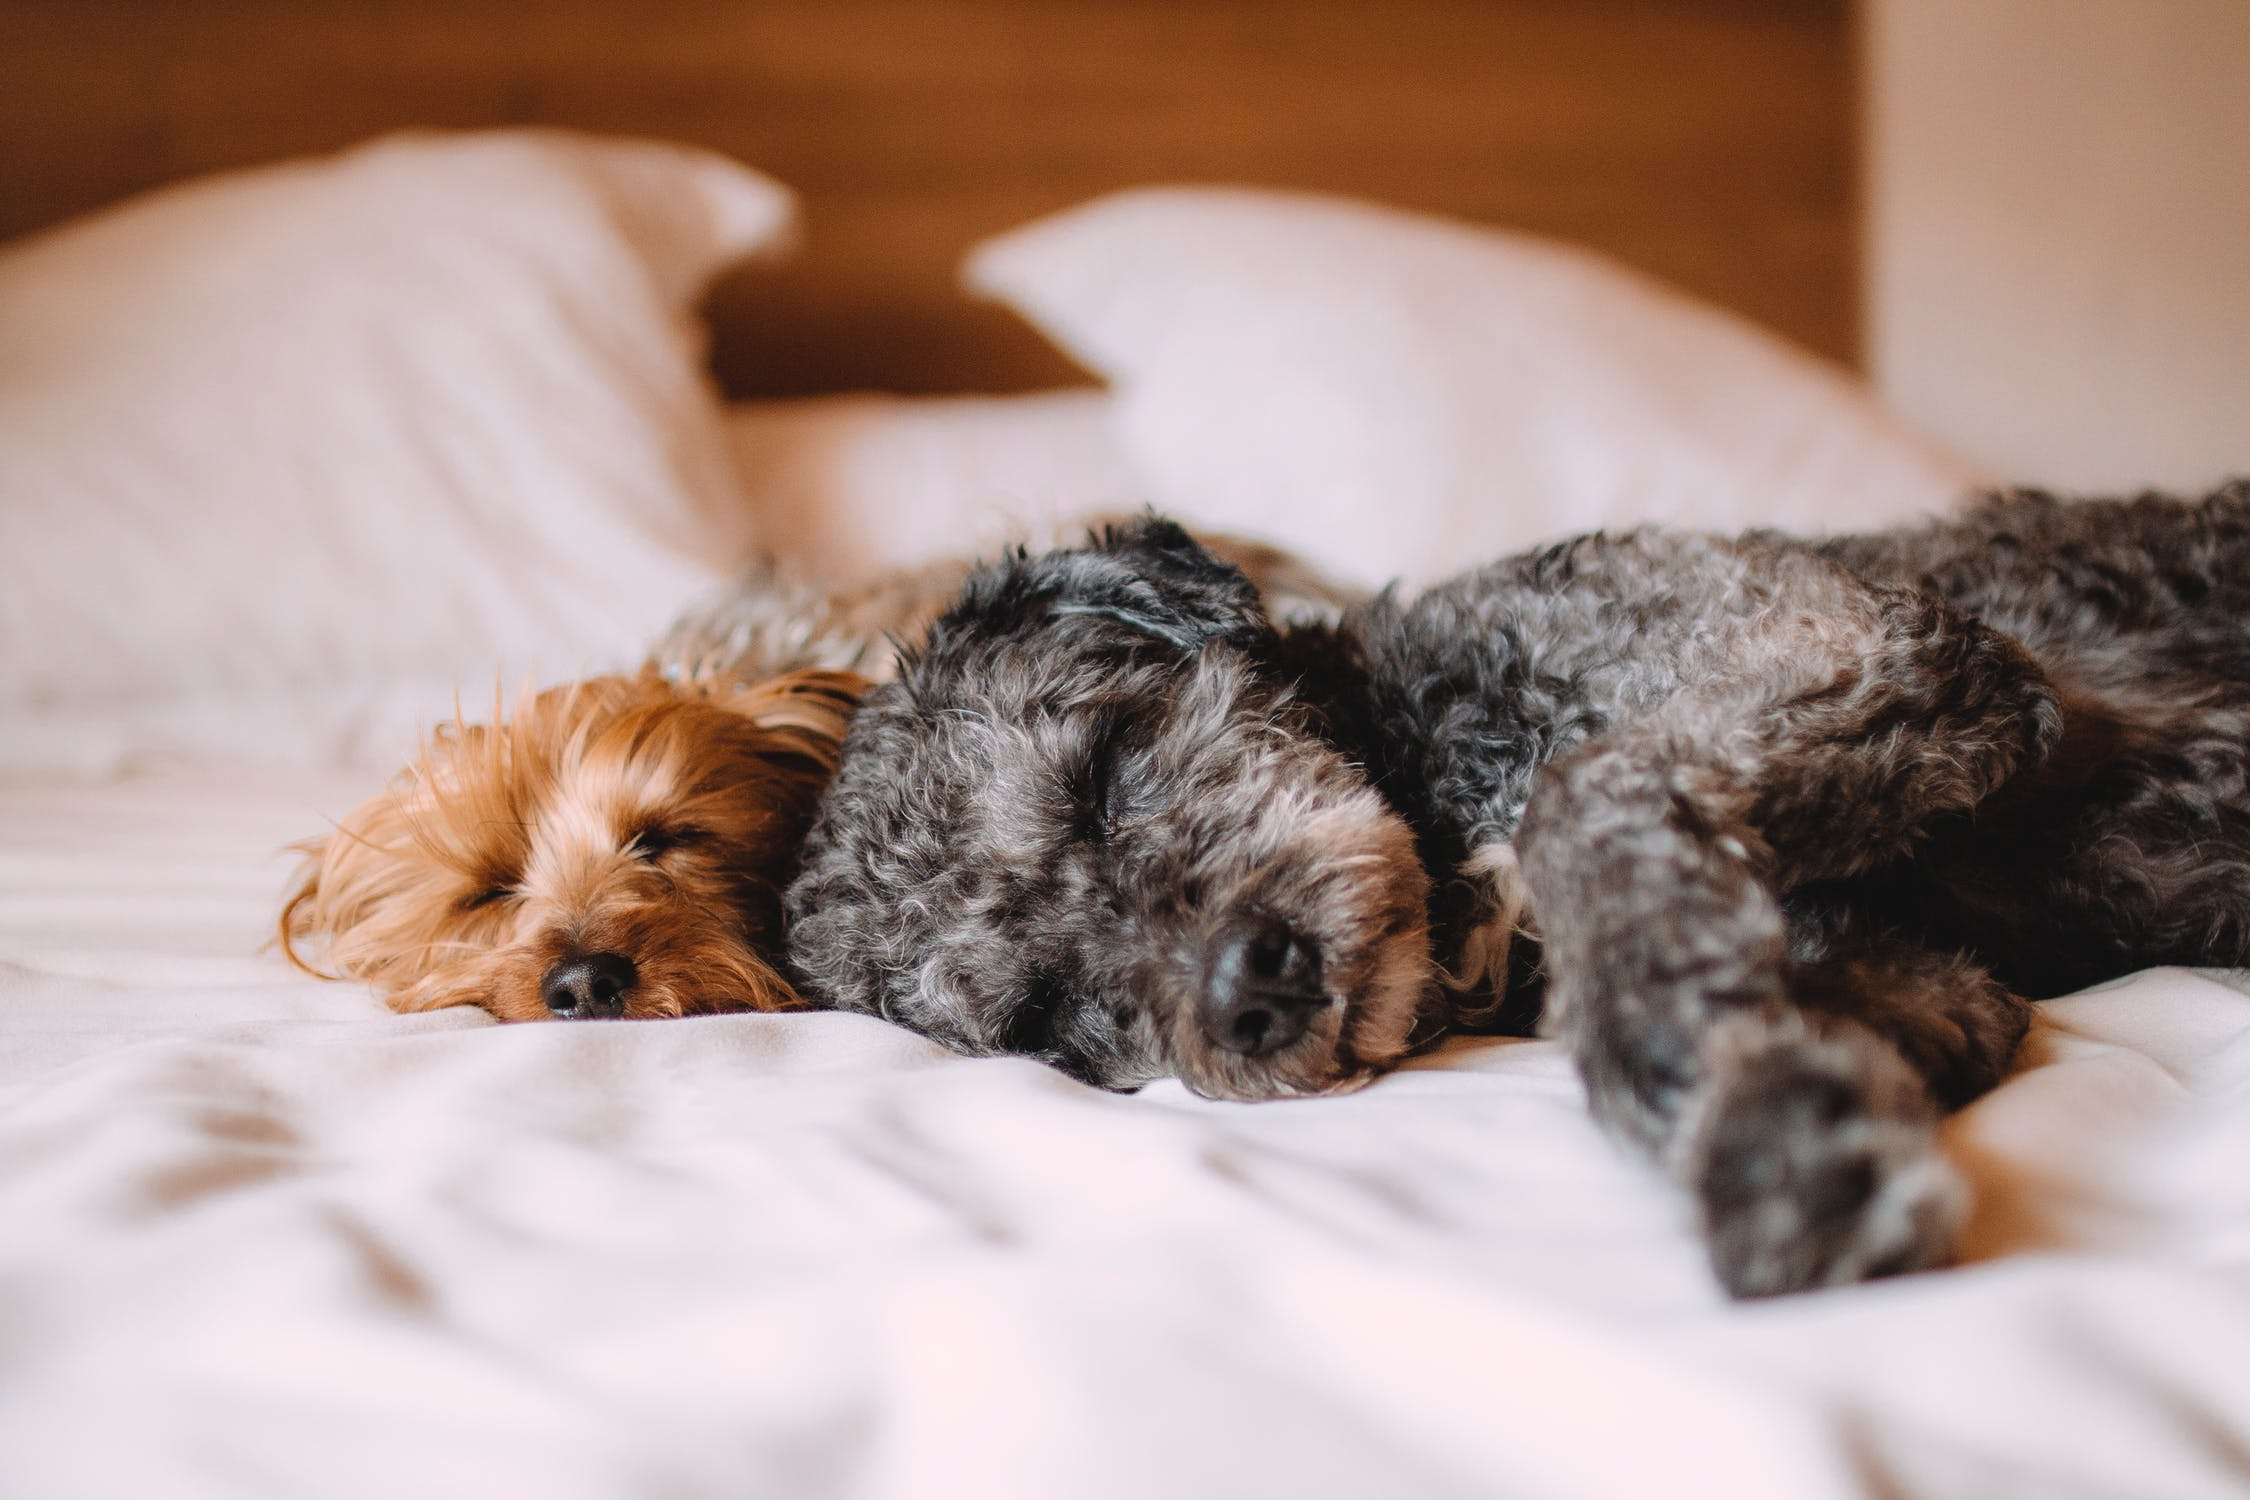 Nearly 75% of dog owners let their pets sleep on the bed with them